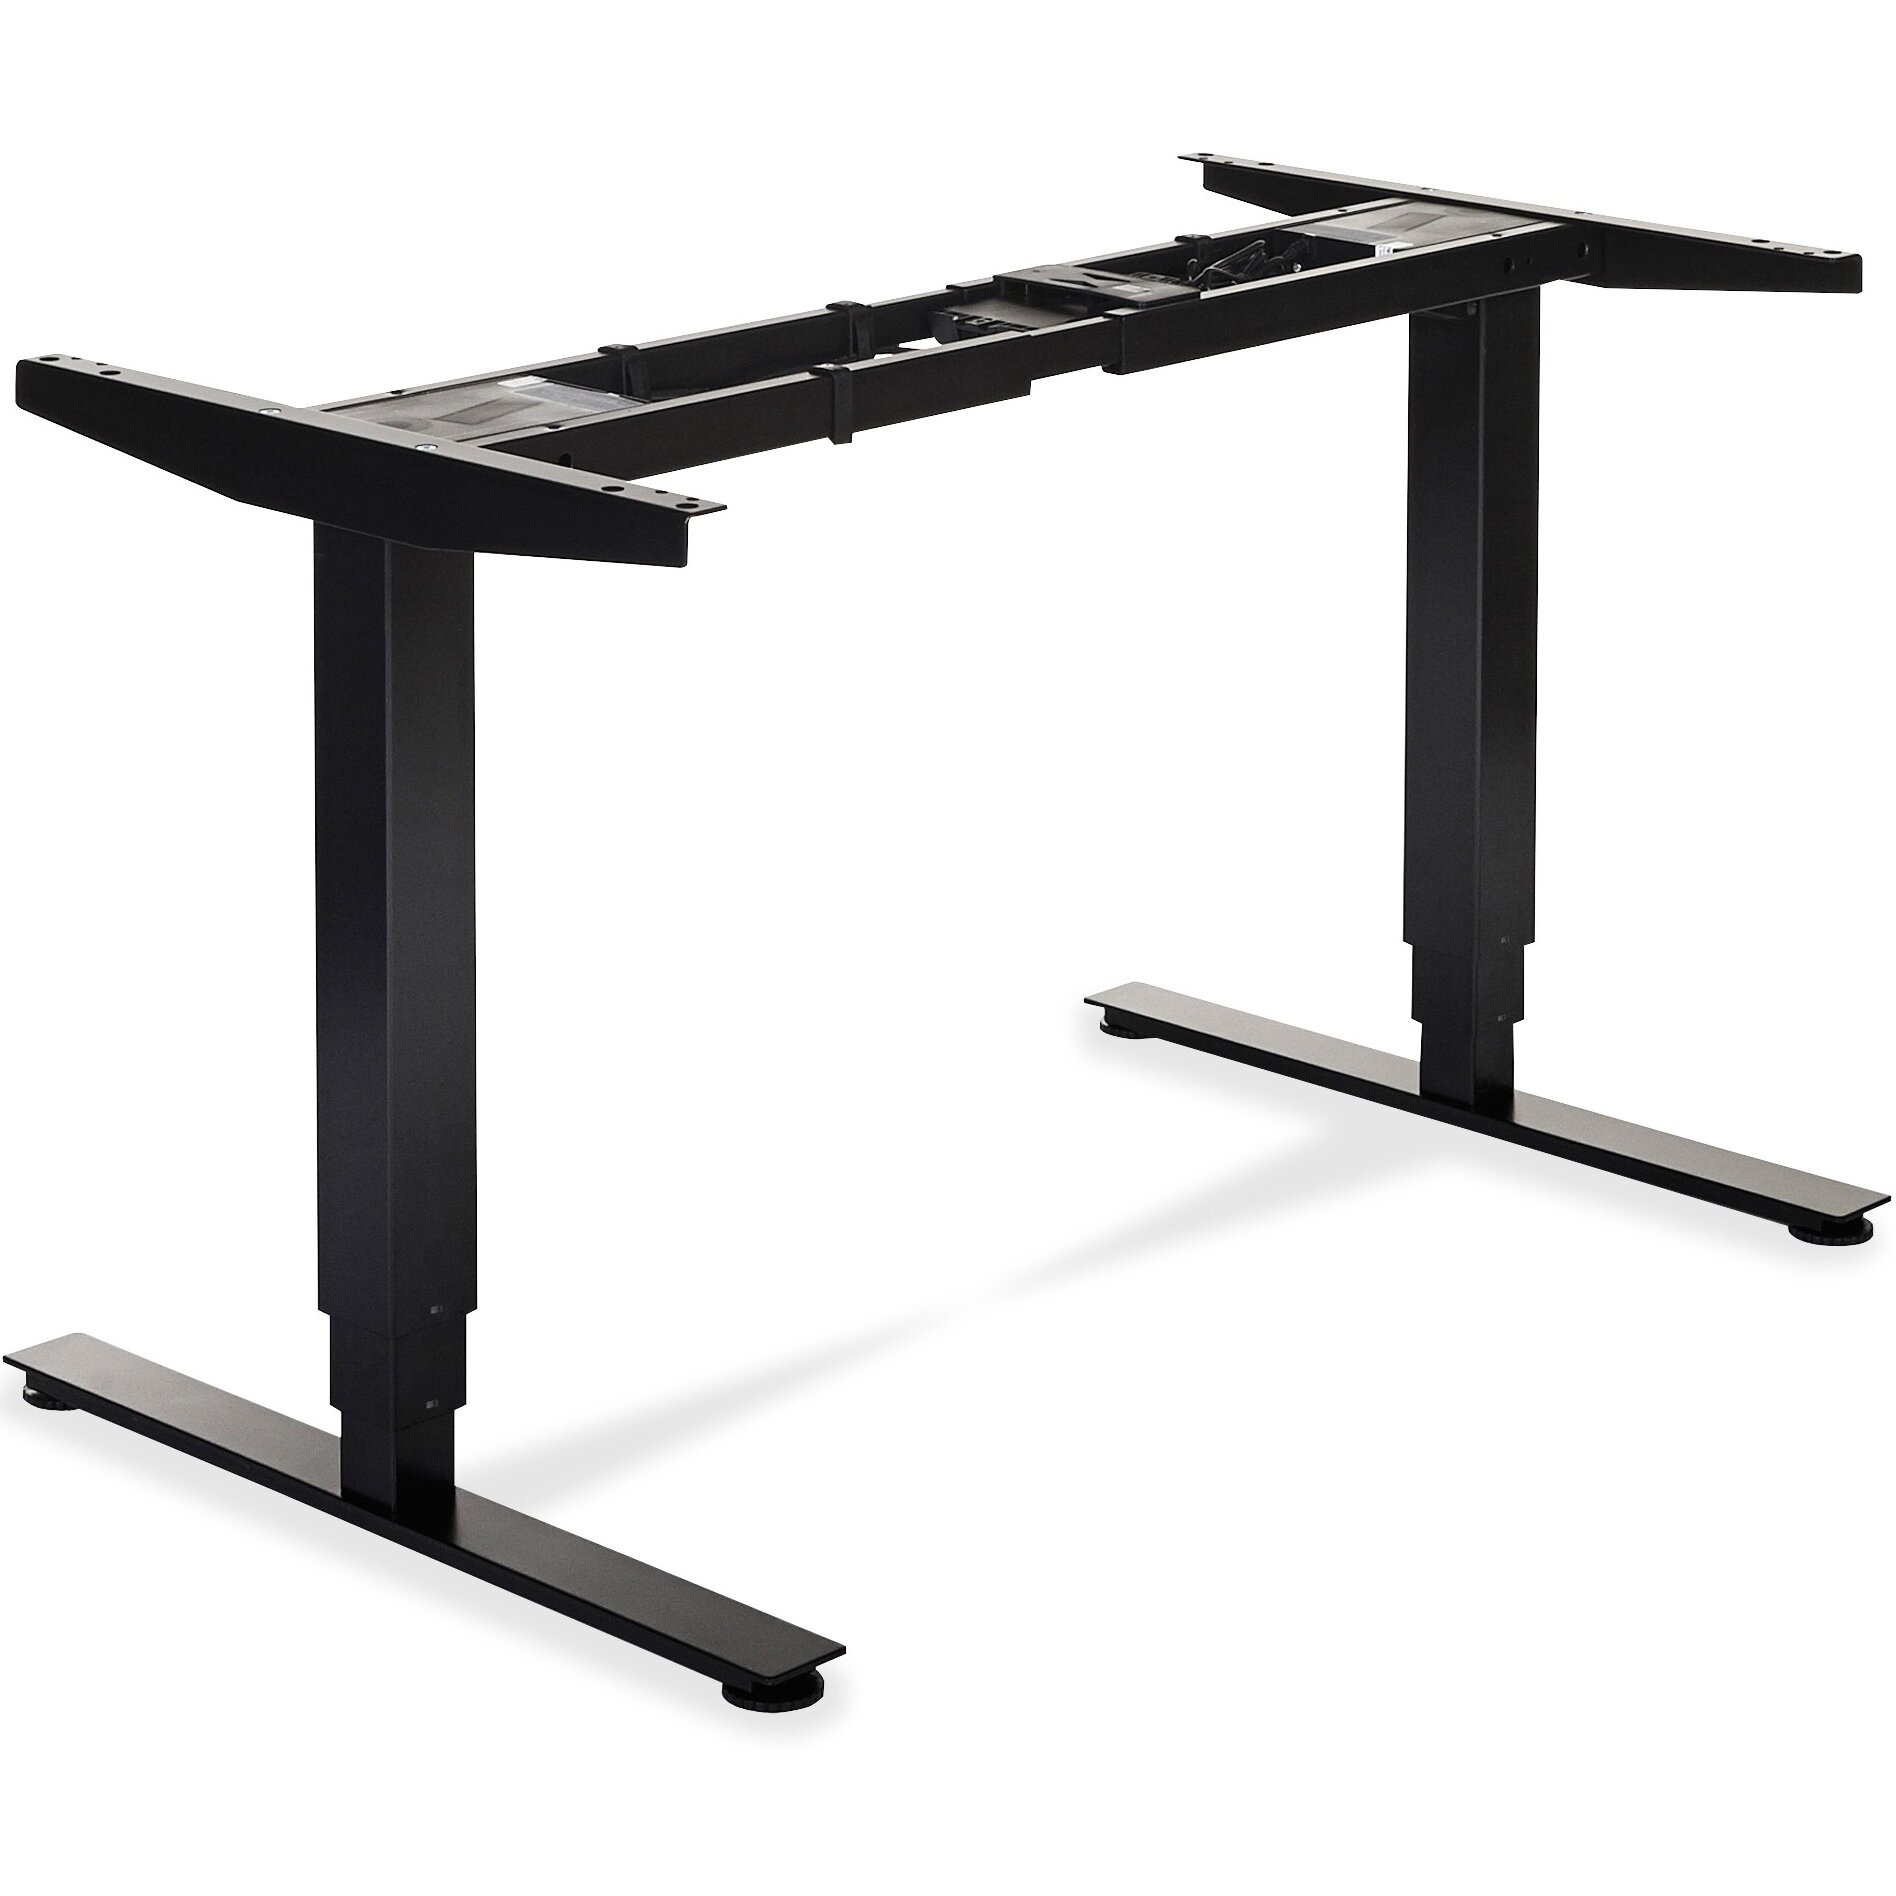 Lorell electric height adjustable sit stand desk frame for Motorized sit stand desk